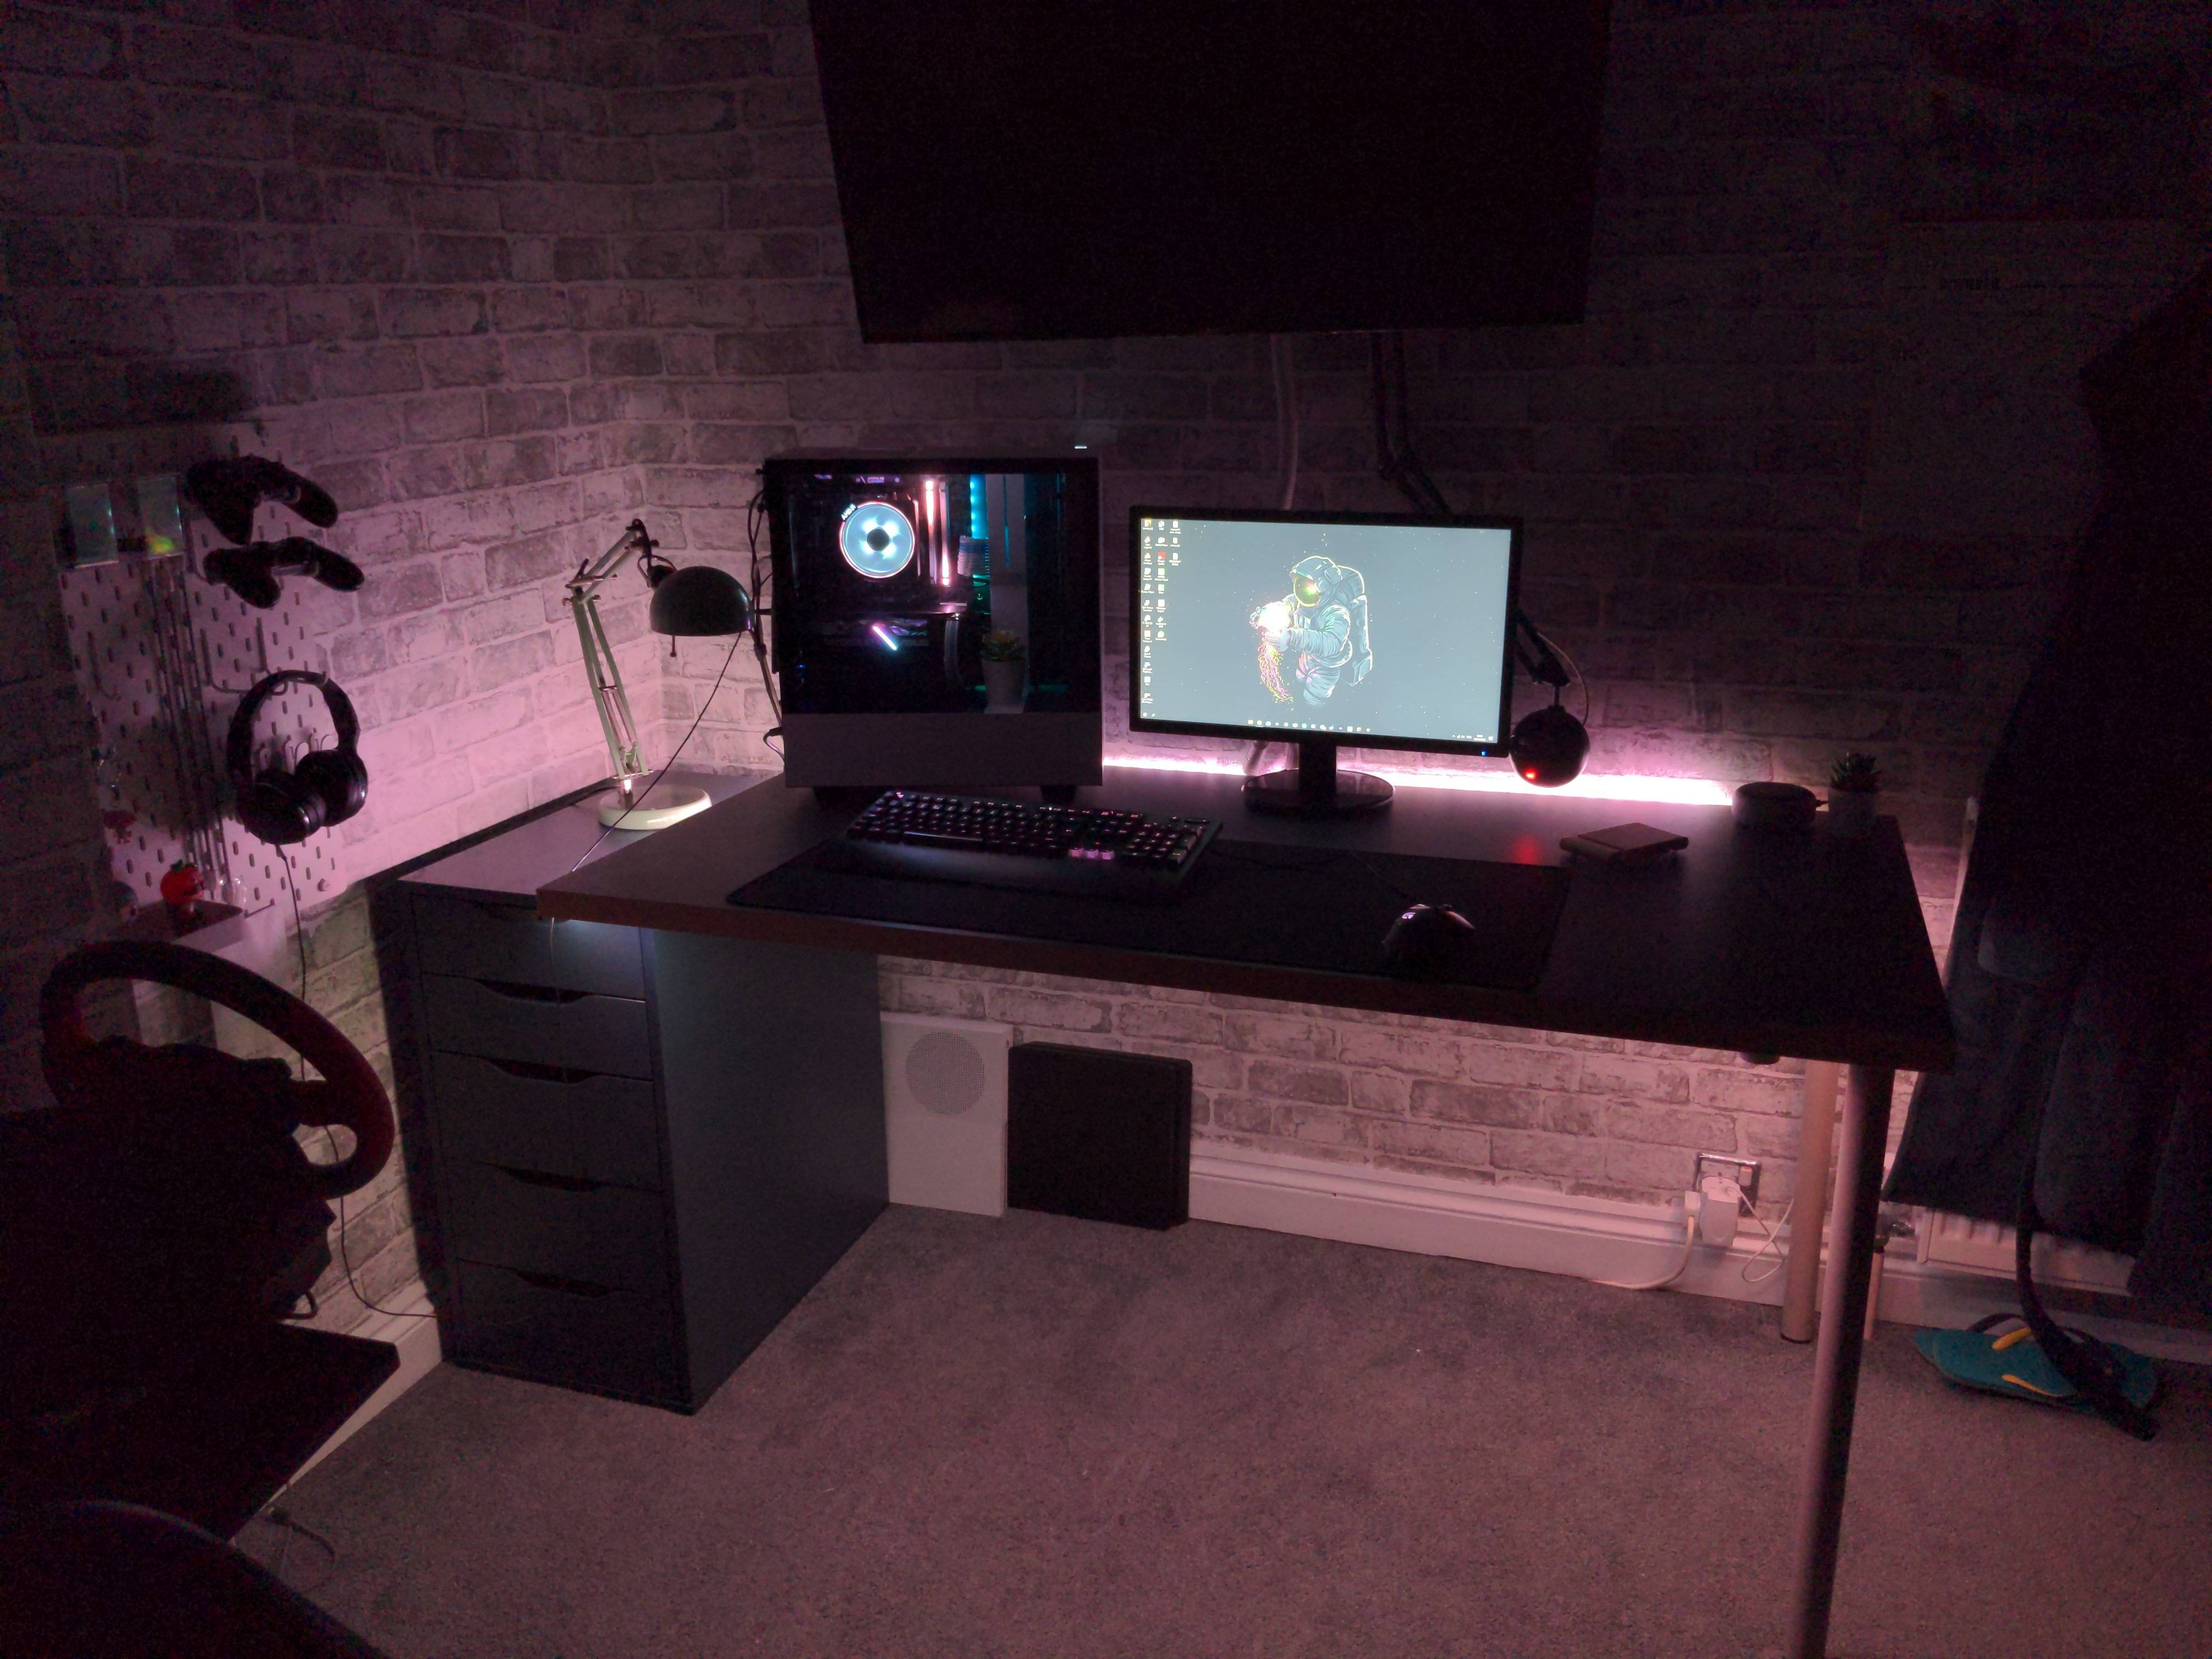 ZakStar616's Setup - Pc setup and console | Scooget